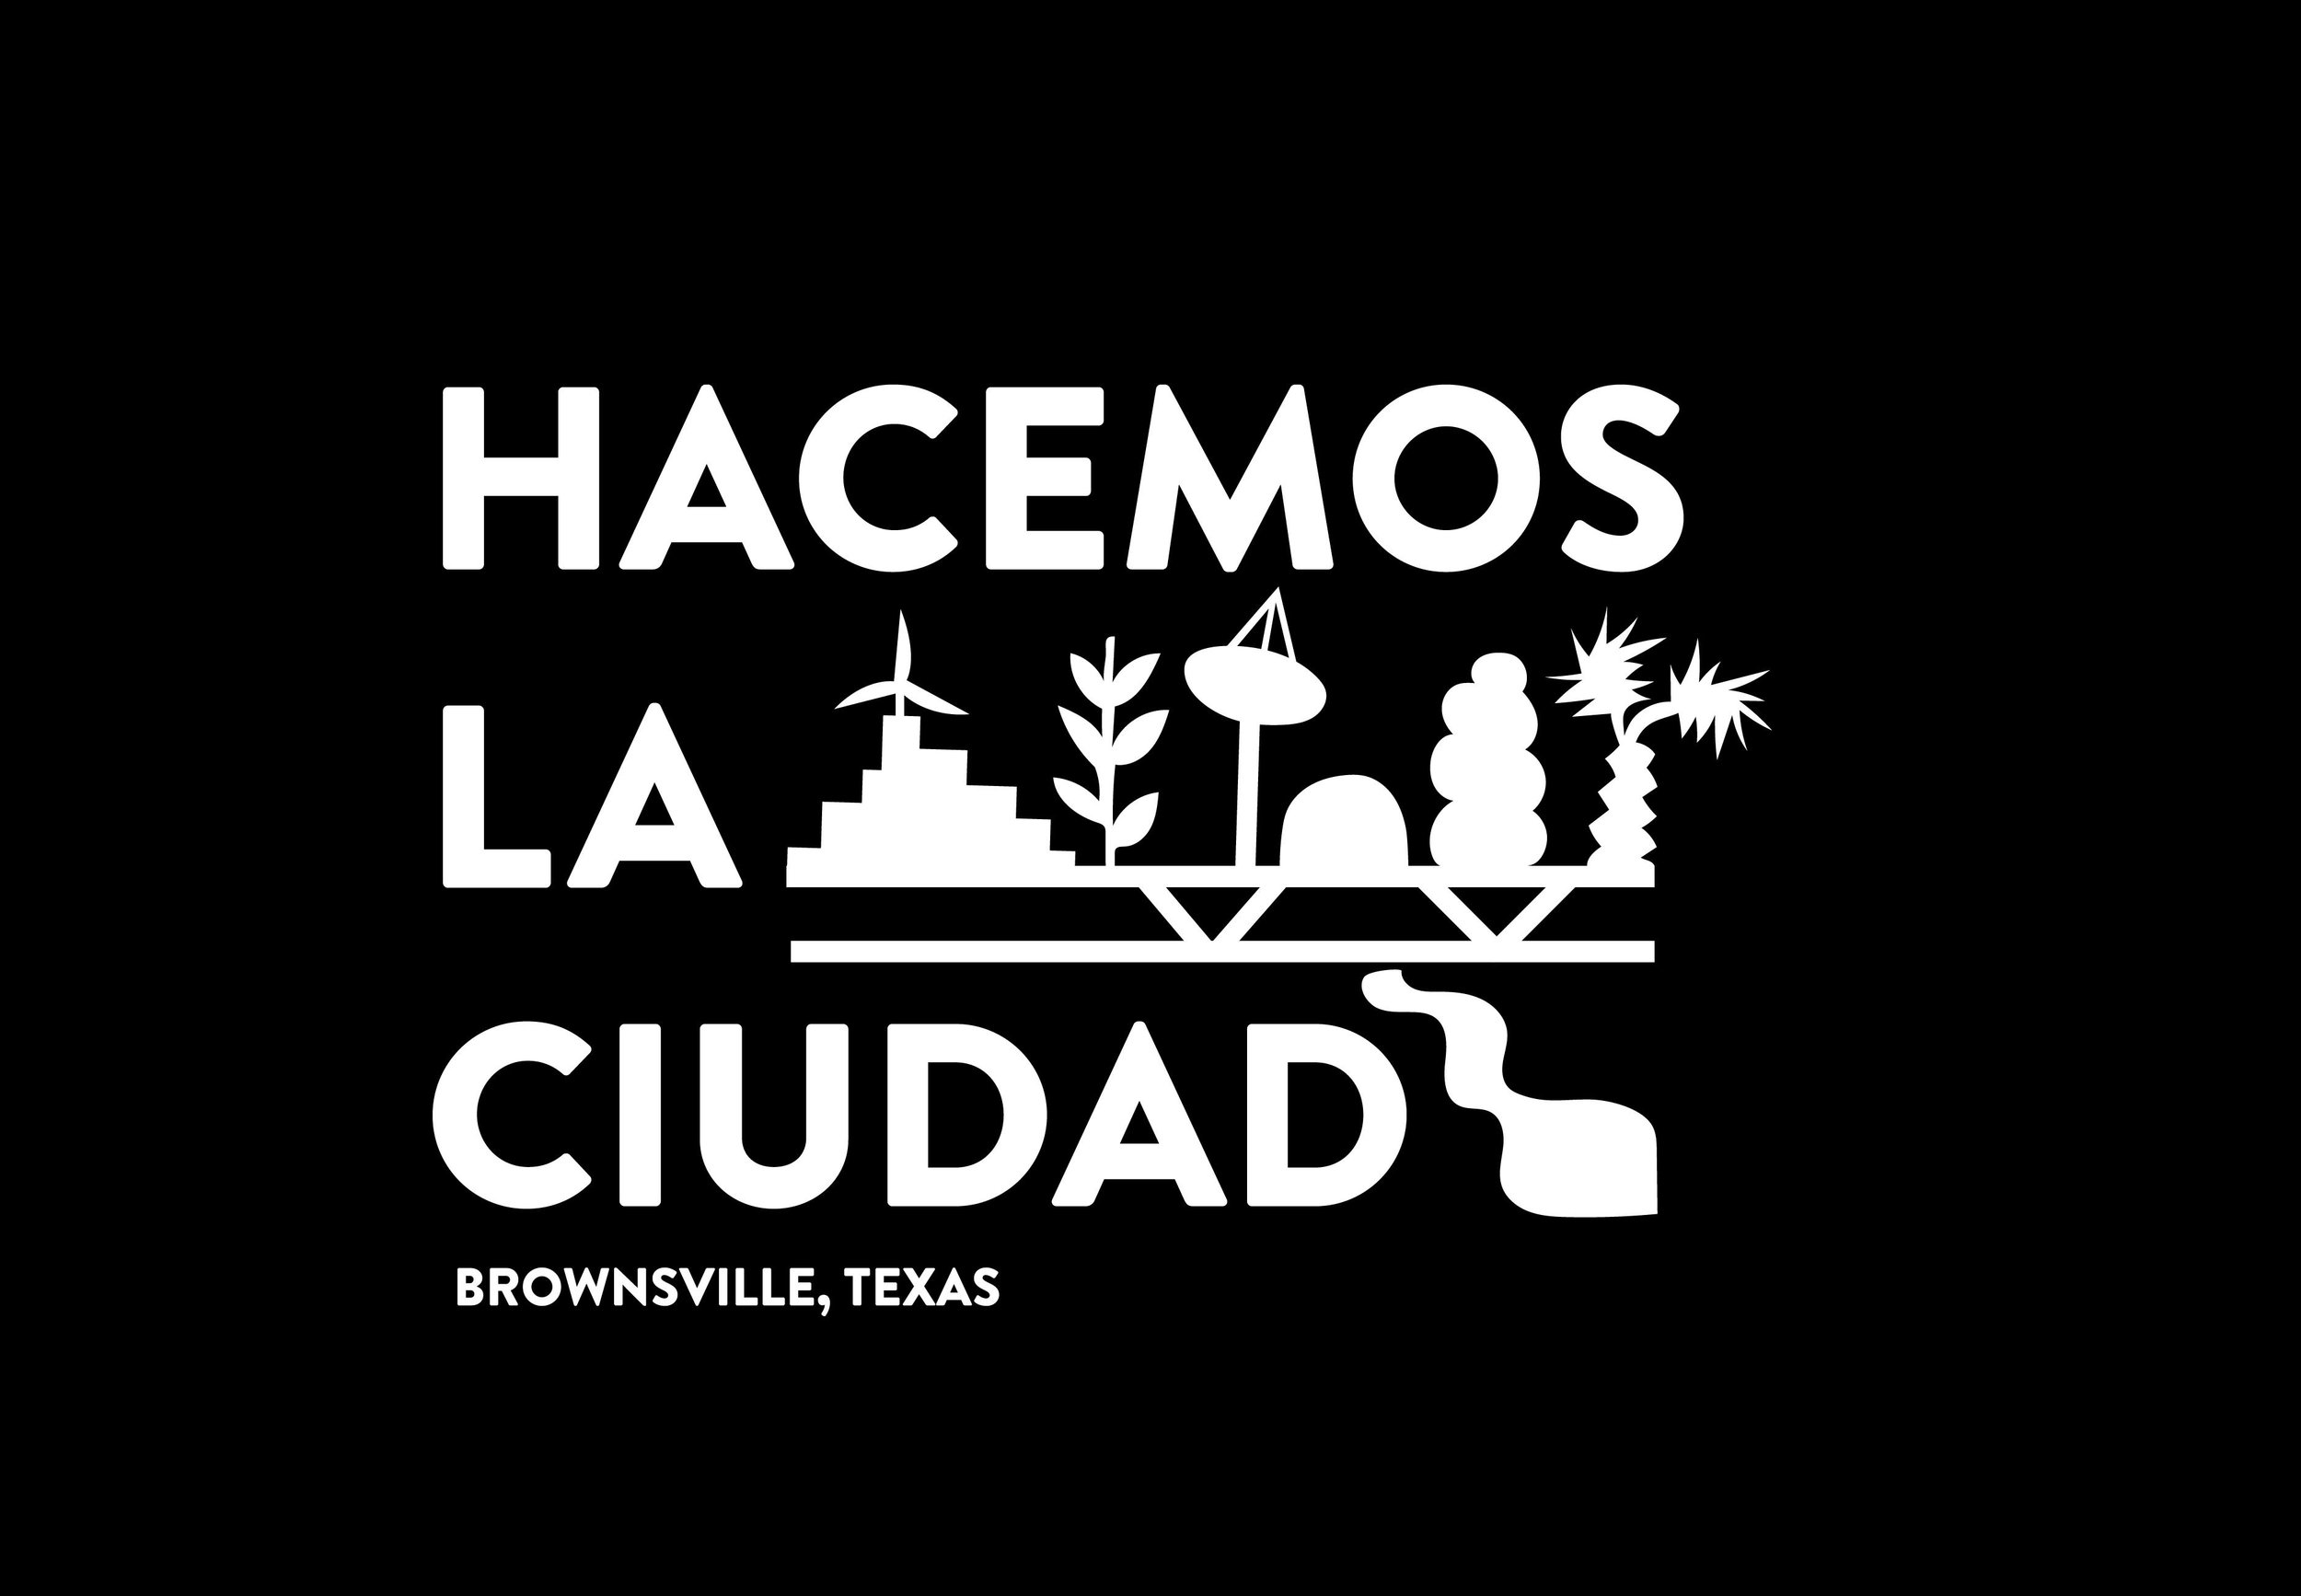 - Hacemos La Ciudad (We Make the City) in Brownsville, Texas; a comprehensive civic reimagining initiative in partnership with professors from University of Texas Rio Grande Valley Center for Mexican American Studies. A yearlong schedule of movement workshops, performances, art installations, and charrettes will consider the mind, heart, hands, and body of Brownsville. The aim of these events will be to examine and question how colonial ideology has informed the existing architecture and infrastructure of the city, and also to offer an opportunity for local residents to imagine a decolonized civic landscape and infrastructure. The project culminates in a Plan de Arte Cívica del Pueblo Entero (Civic Art Plan of the People).